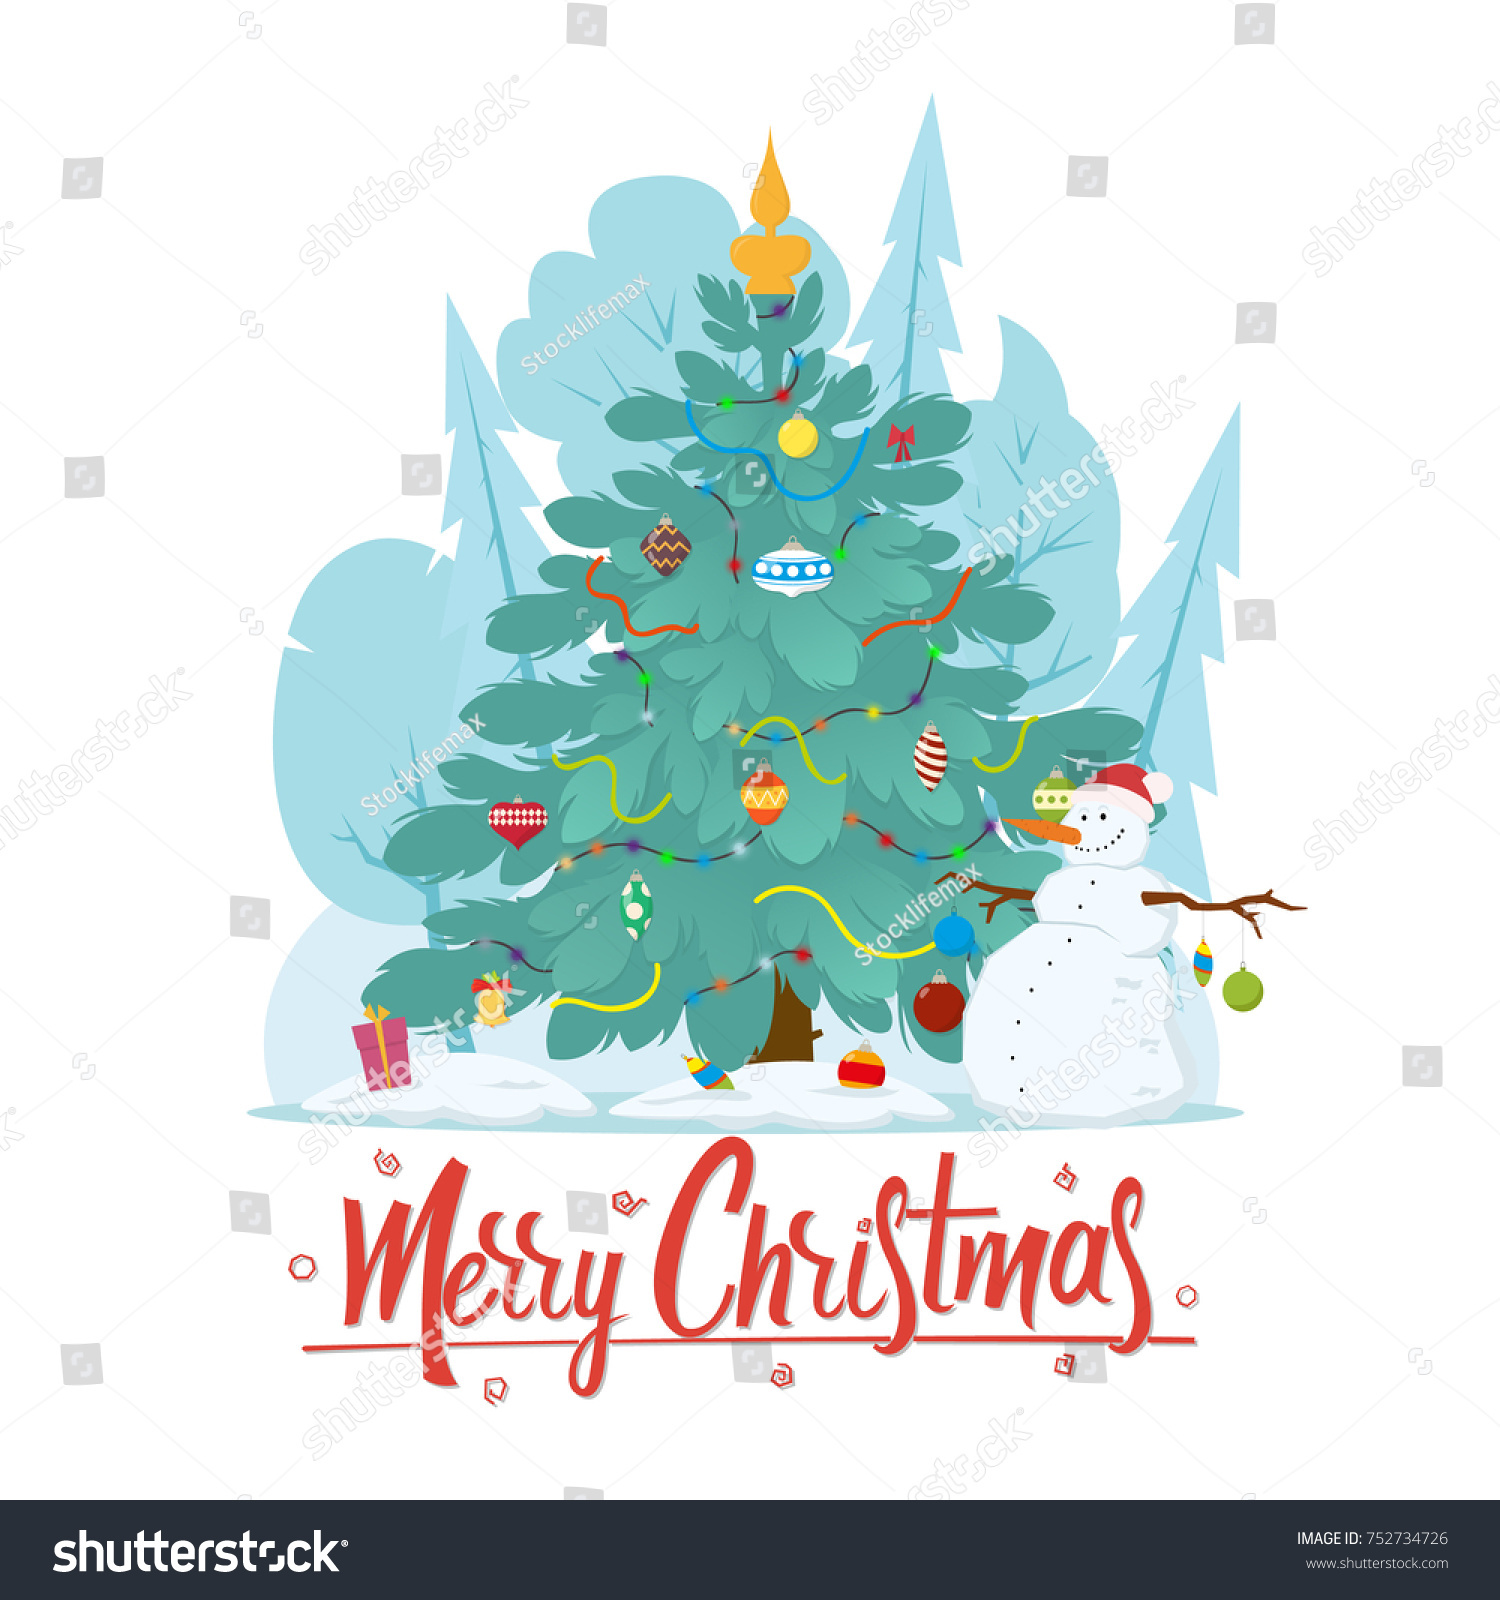 Christmas Christmas tree next to a snowman in a winter forest. vector illustration isolated on white background. #752734726